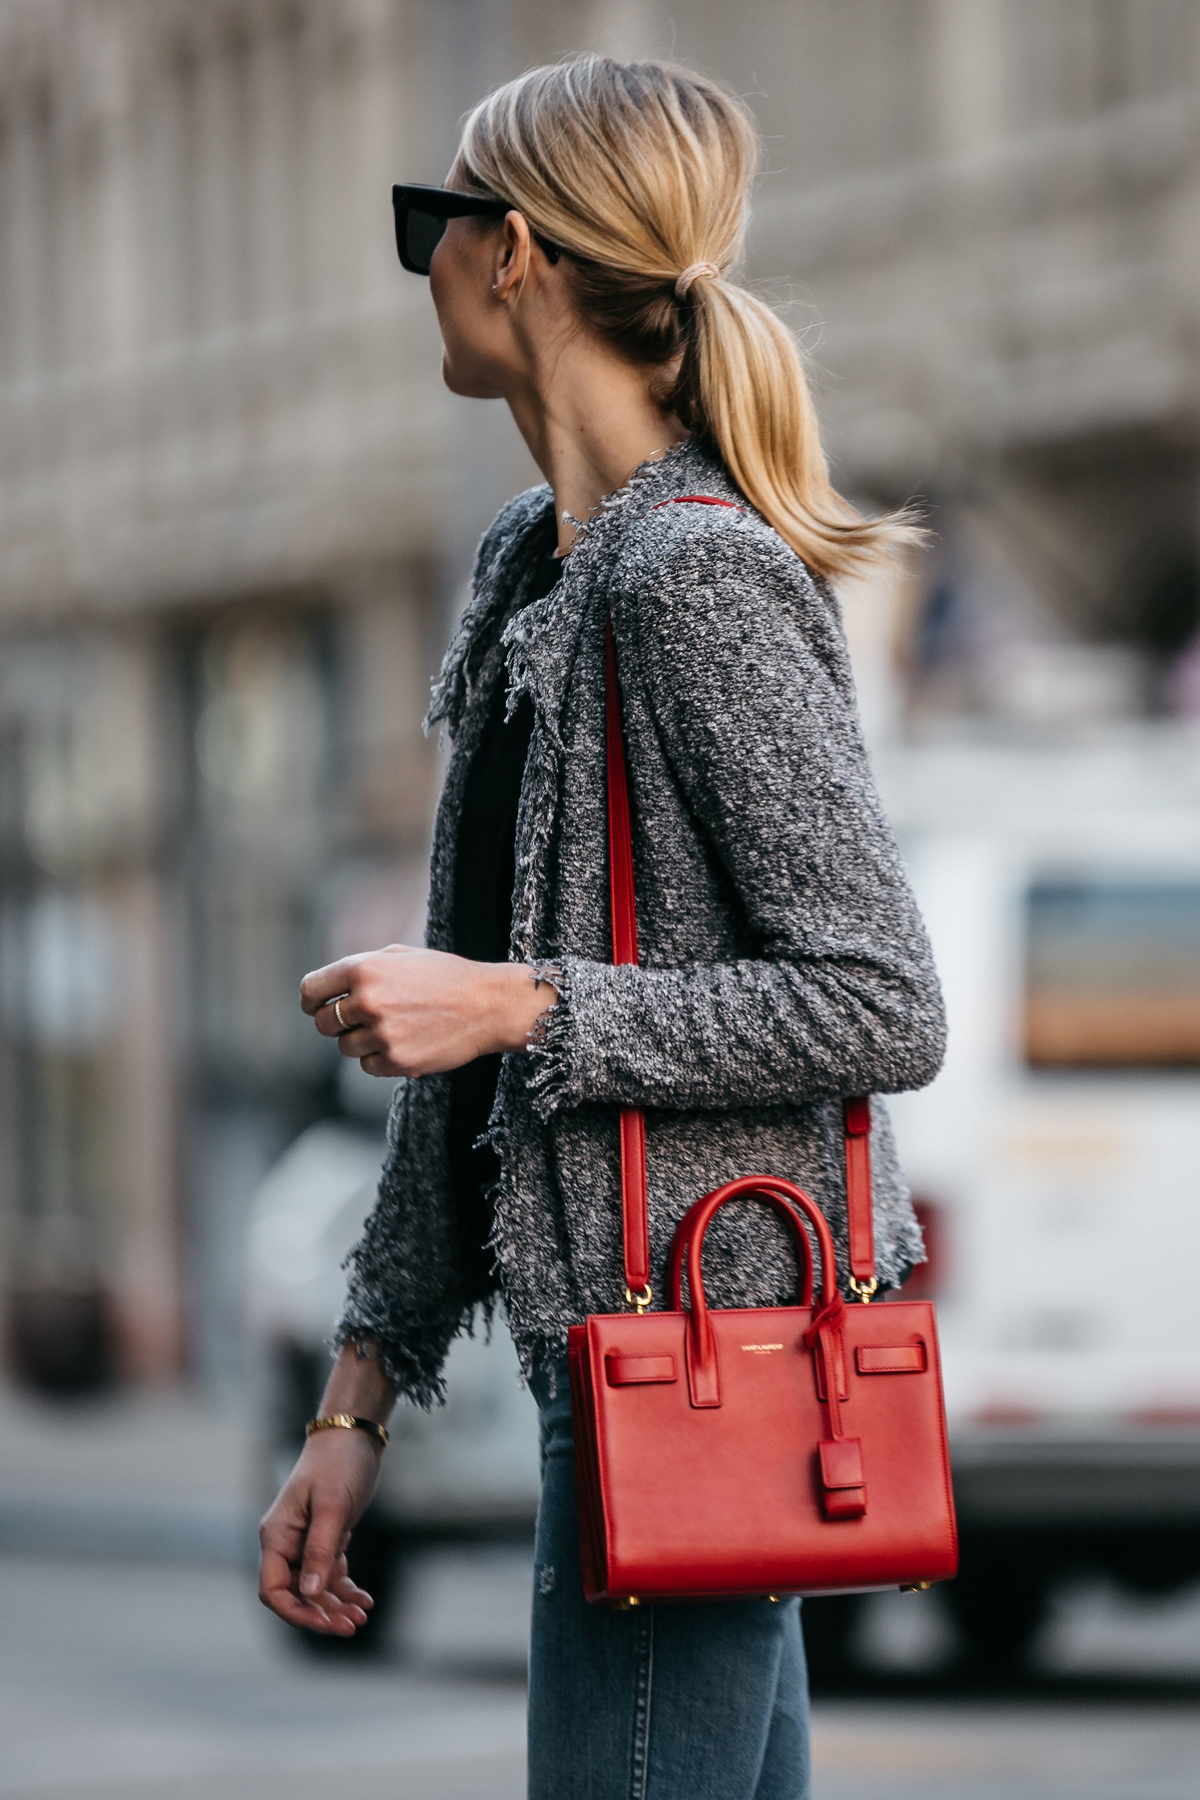 Blonde Woman Wearing IRO Shavanix Grey Tweed Jacket Denim Saint Laurent Sac De Jour Red Handbag Fashion Jackson Dallas Blogger Fashion Blogger Street Style